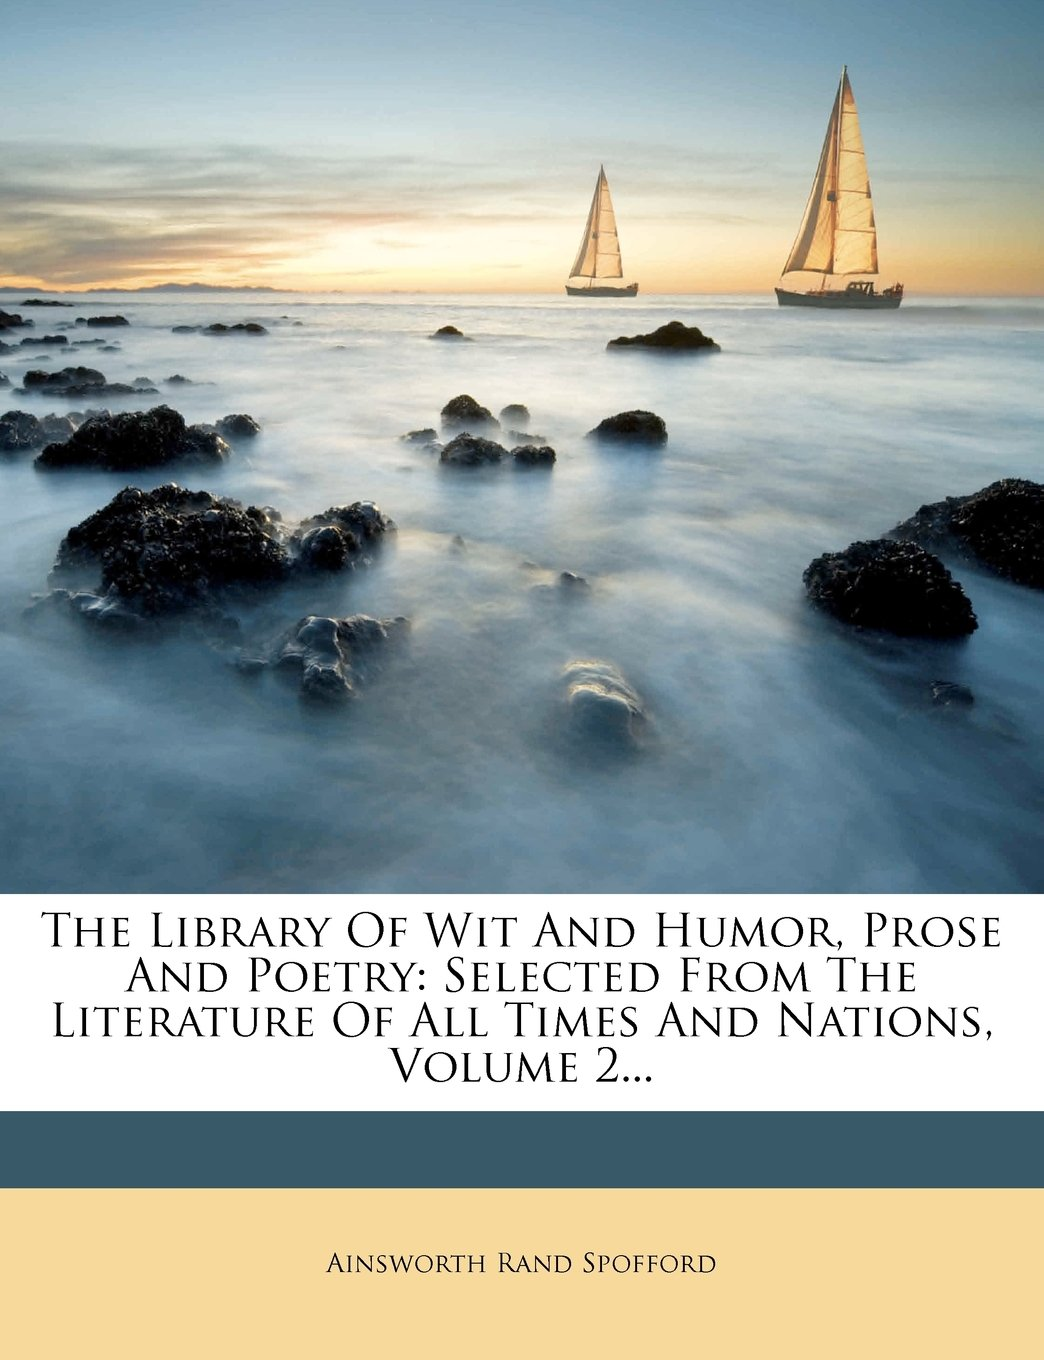 The Library Of Wit And Humor, Prose And Poetry: Selected From The Literature Of All Times And Nations, Volume 2... pdf